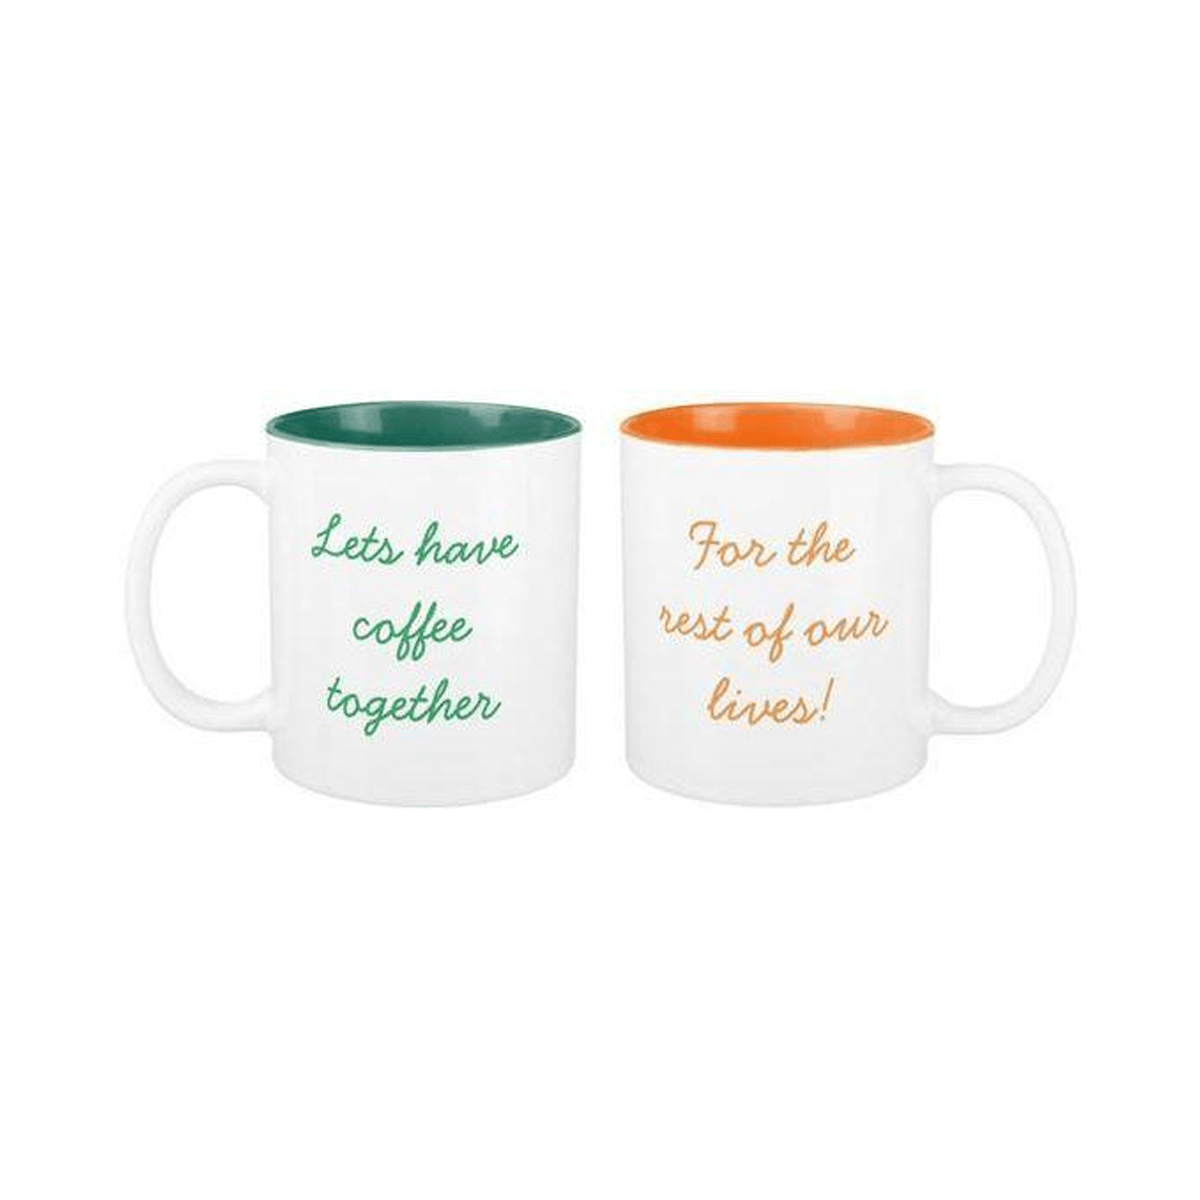 Let's have Coffee together, for the rest of our lives Two-tone Couple Mugs